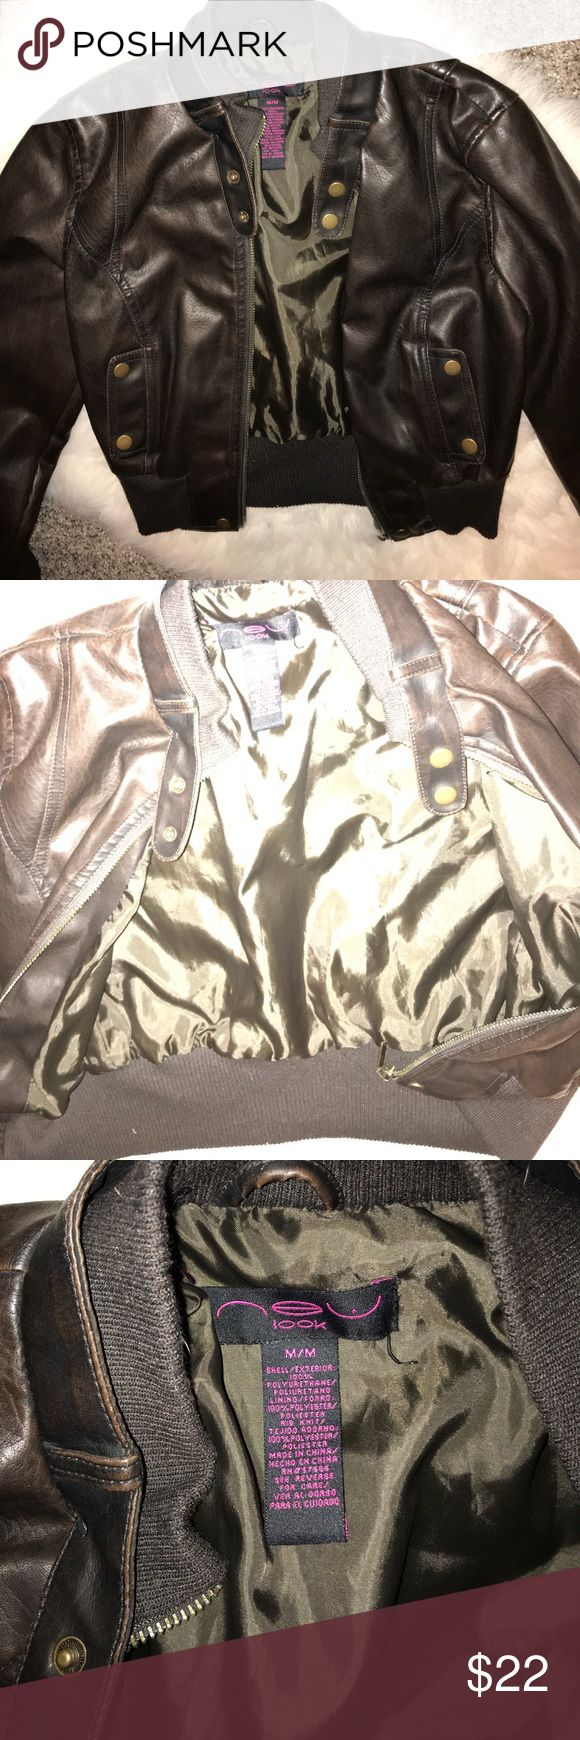 Brown cropped faux leather jacket size M These beautiful cropped jacket has never been worn and is in need of a good home 😍 no stains or defects. Zipper works. New Look Jackets & Coats